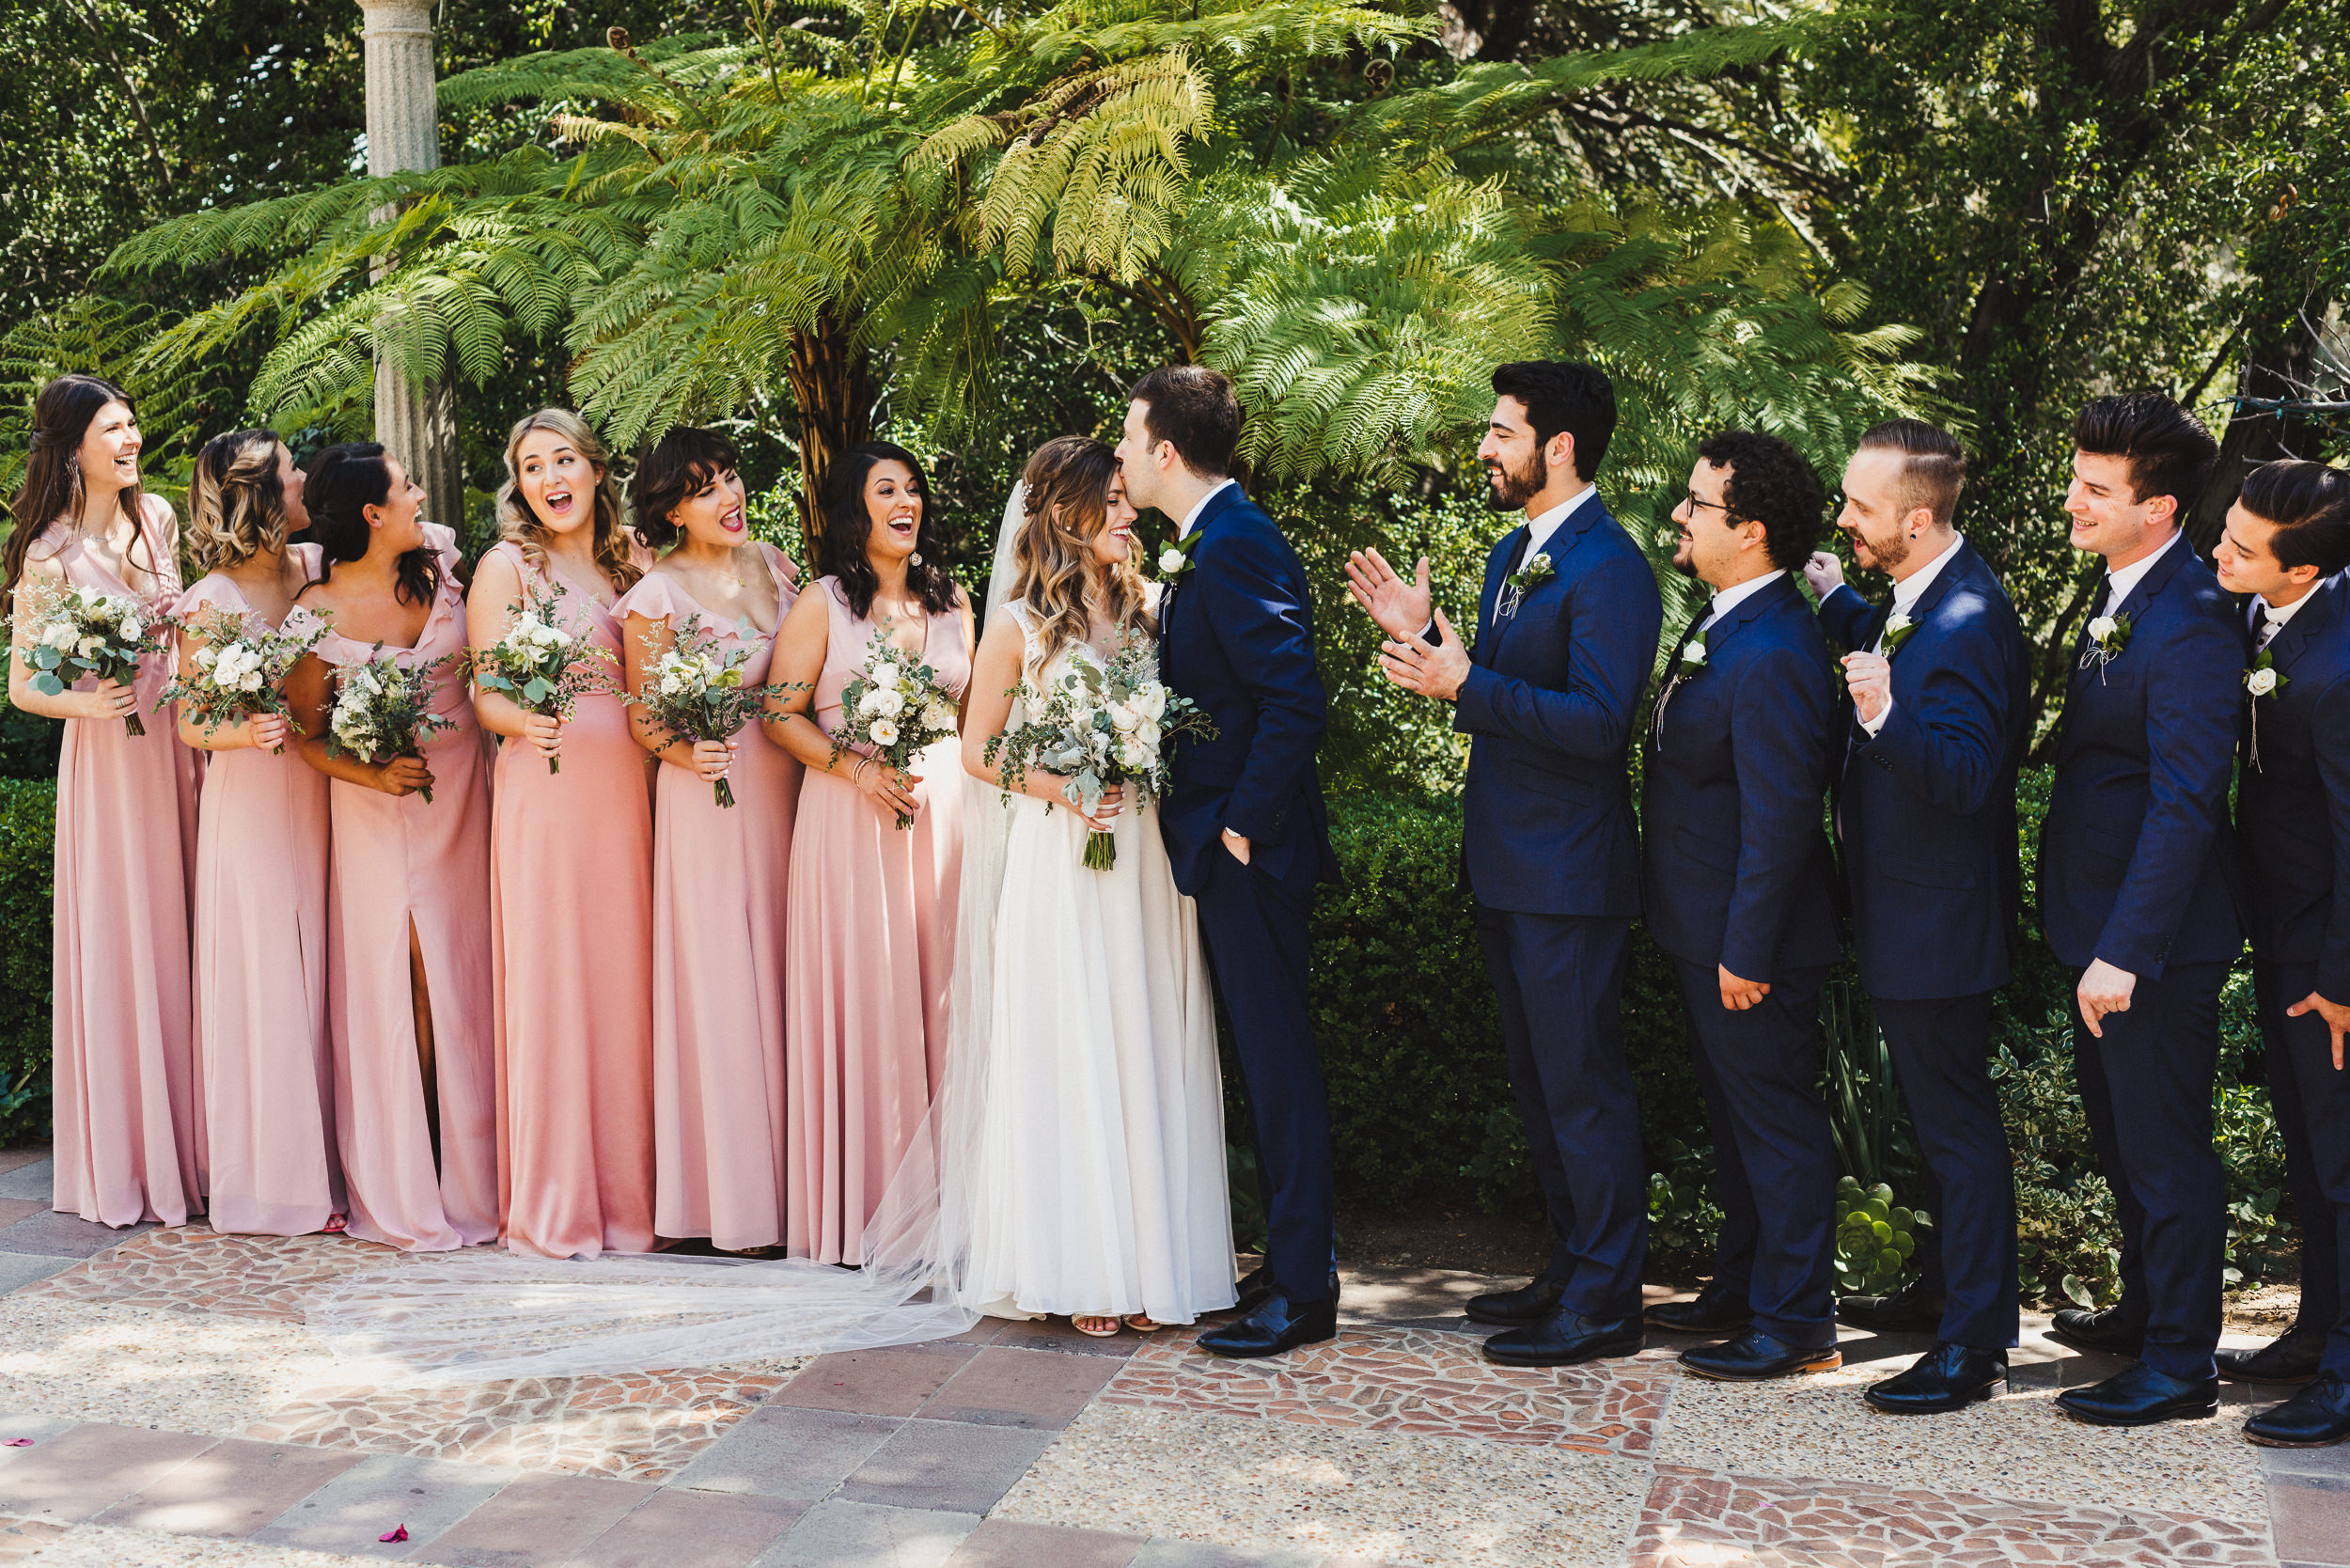 sC+D - Houdini's Mansion - 06 Bridal Party-15.jpg